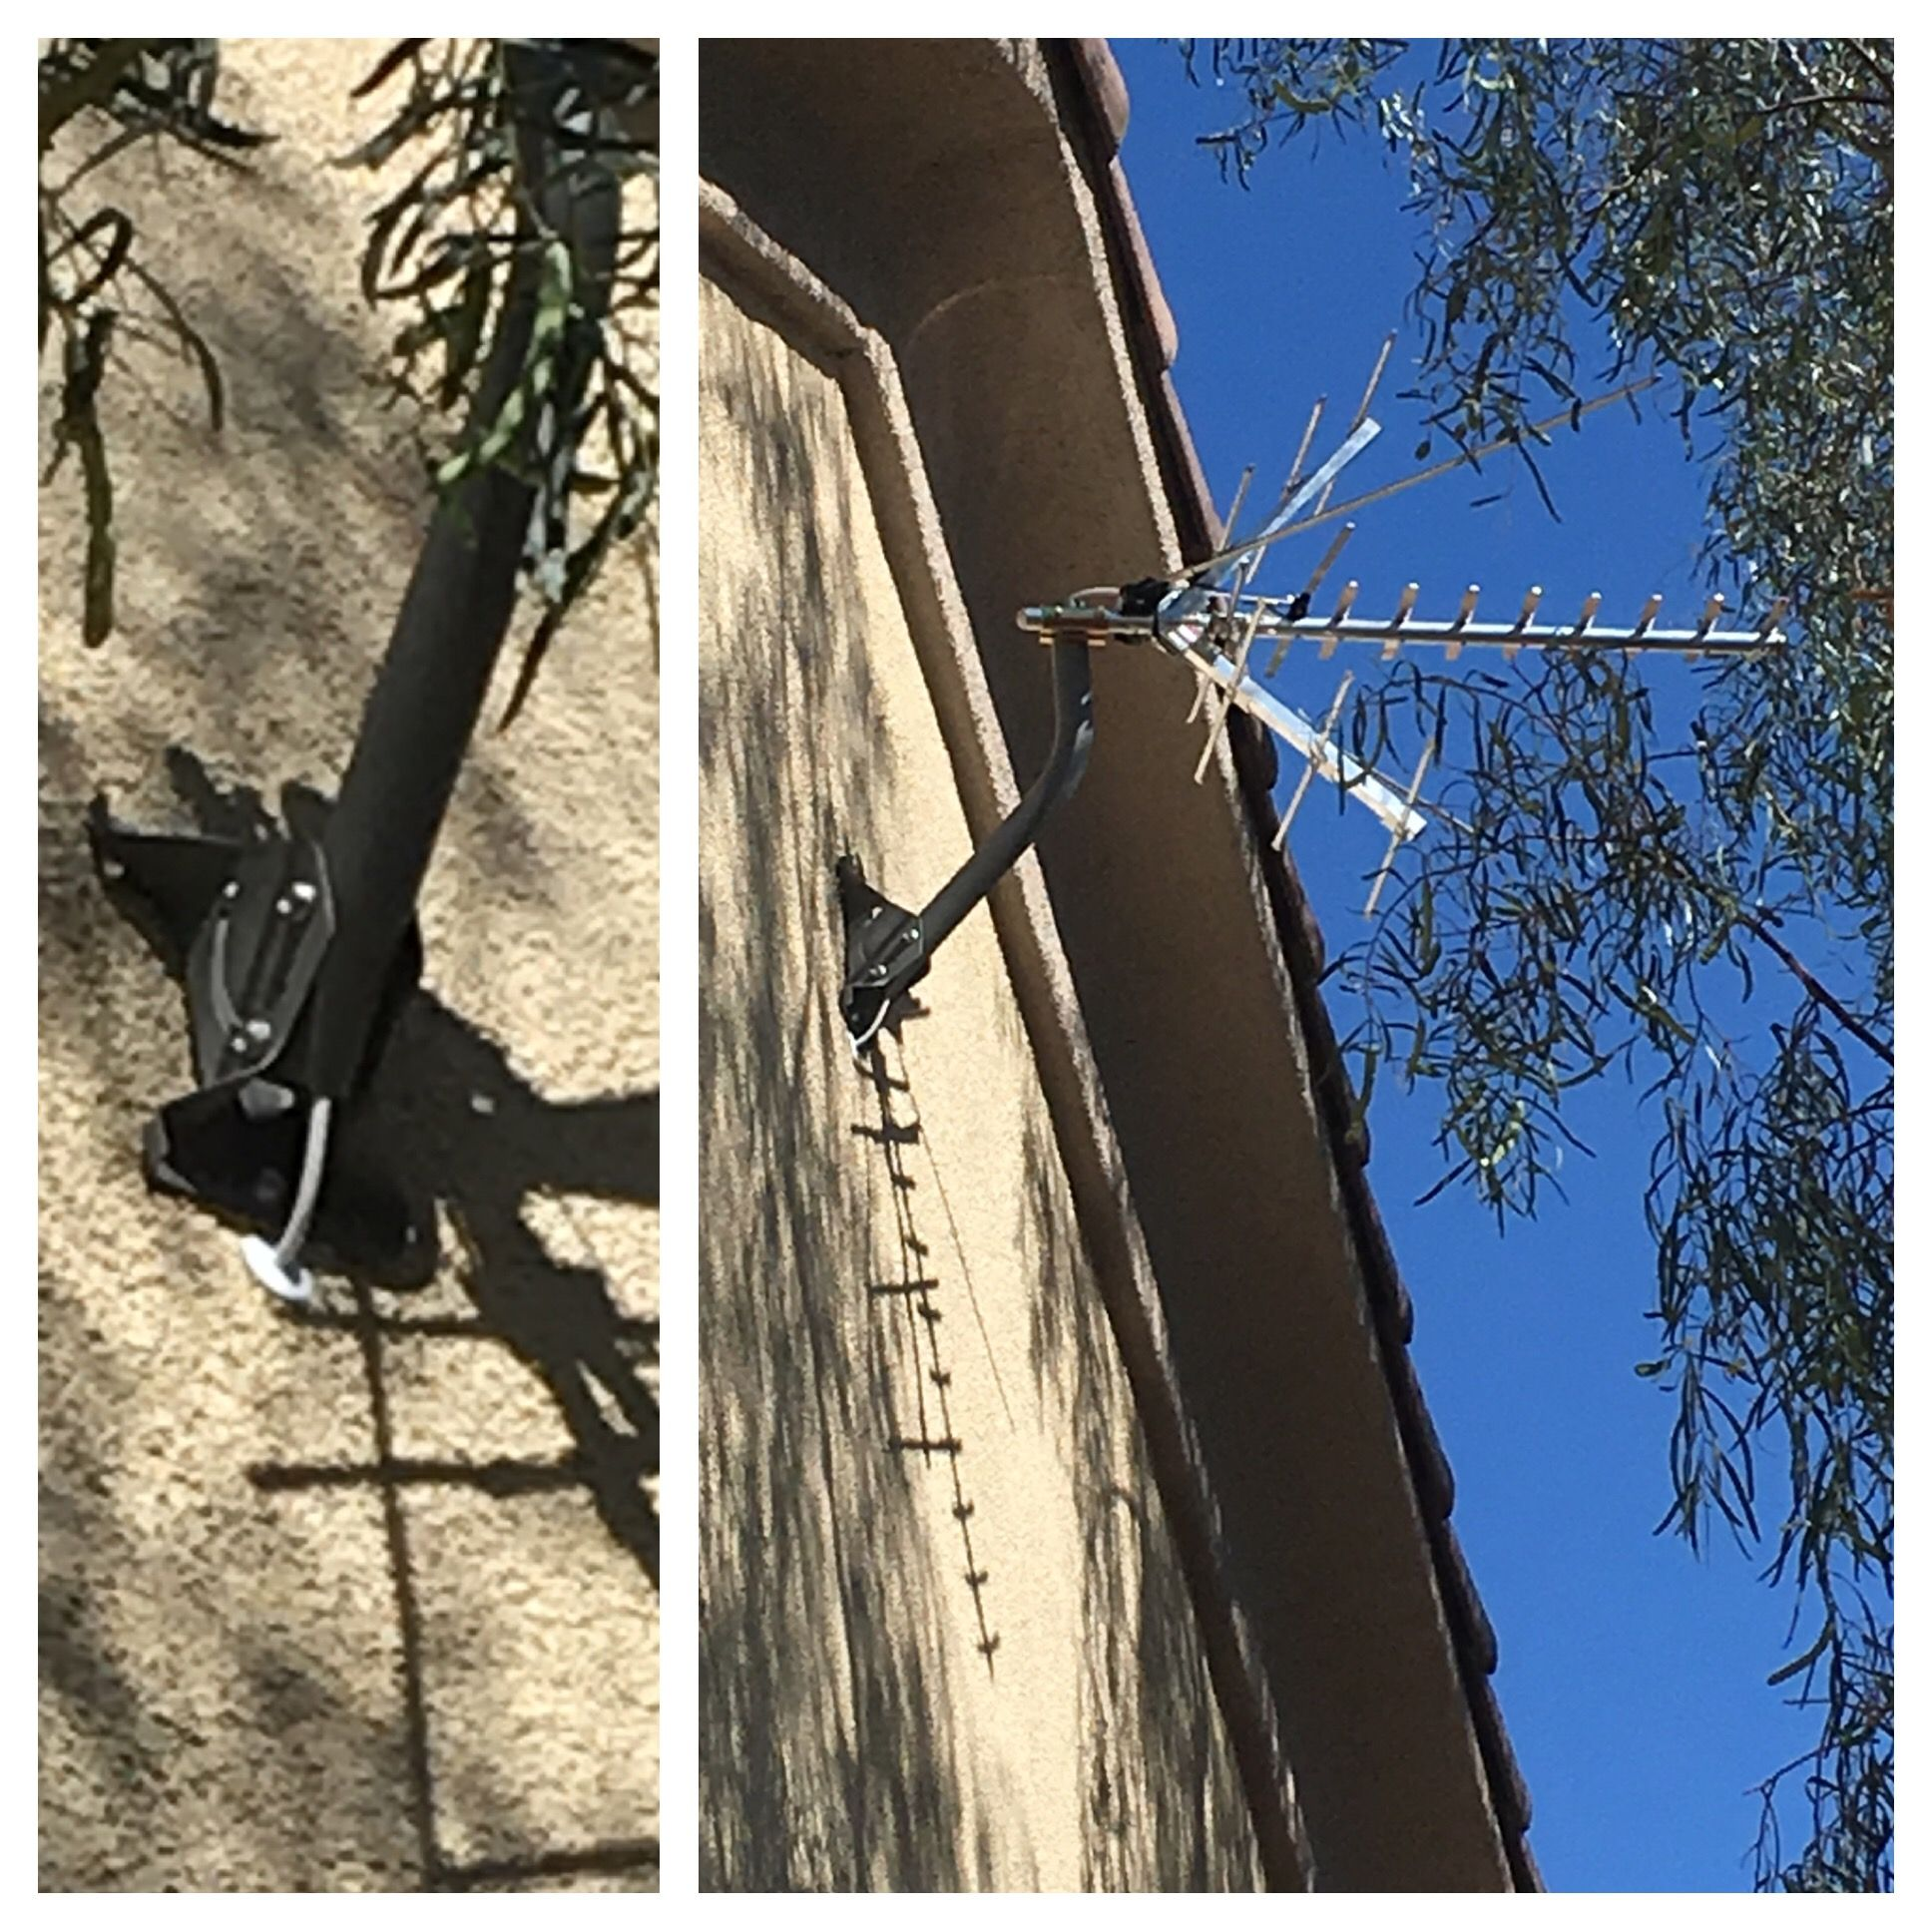 stealth hdtv antenna installation  wired through the attic to structured  wiring panel in the home  by www freehdtvaz com @freehdtvaz #cordcutter